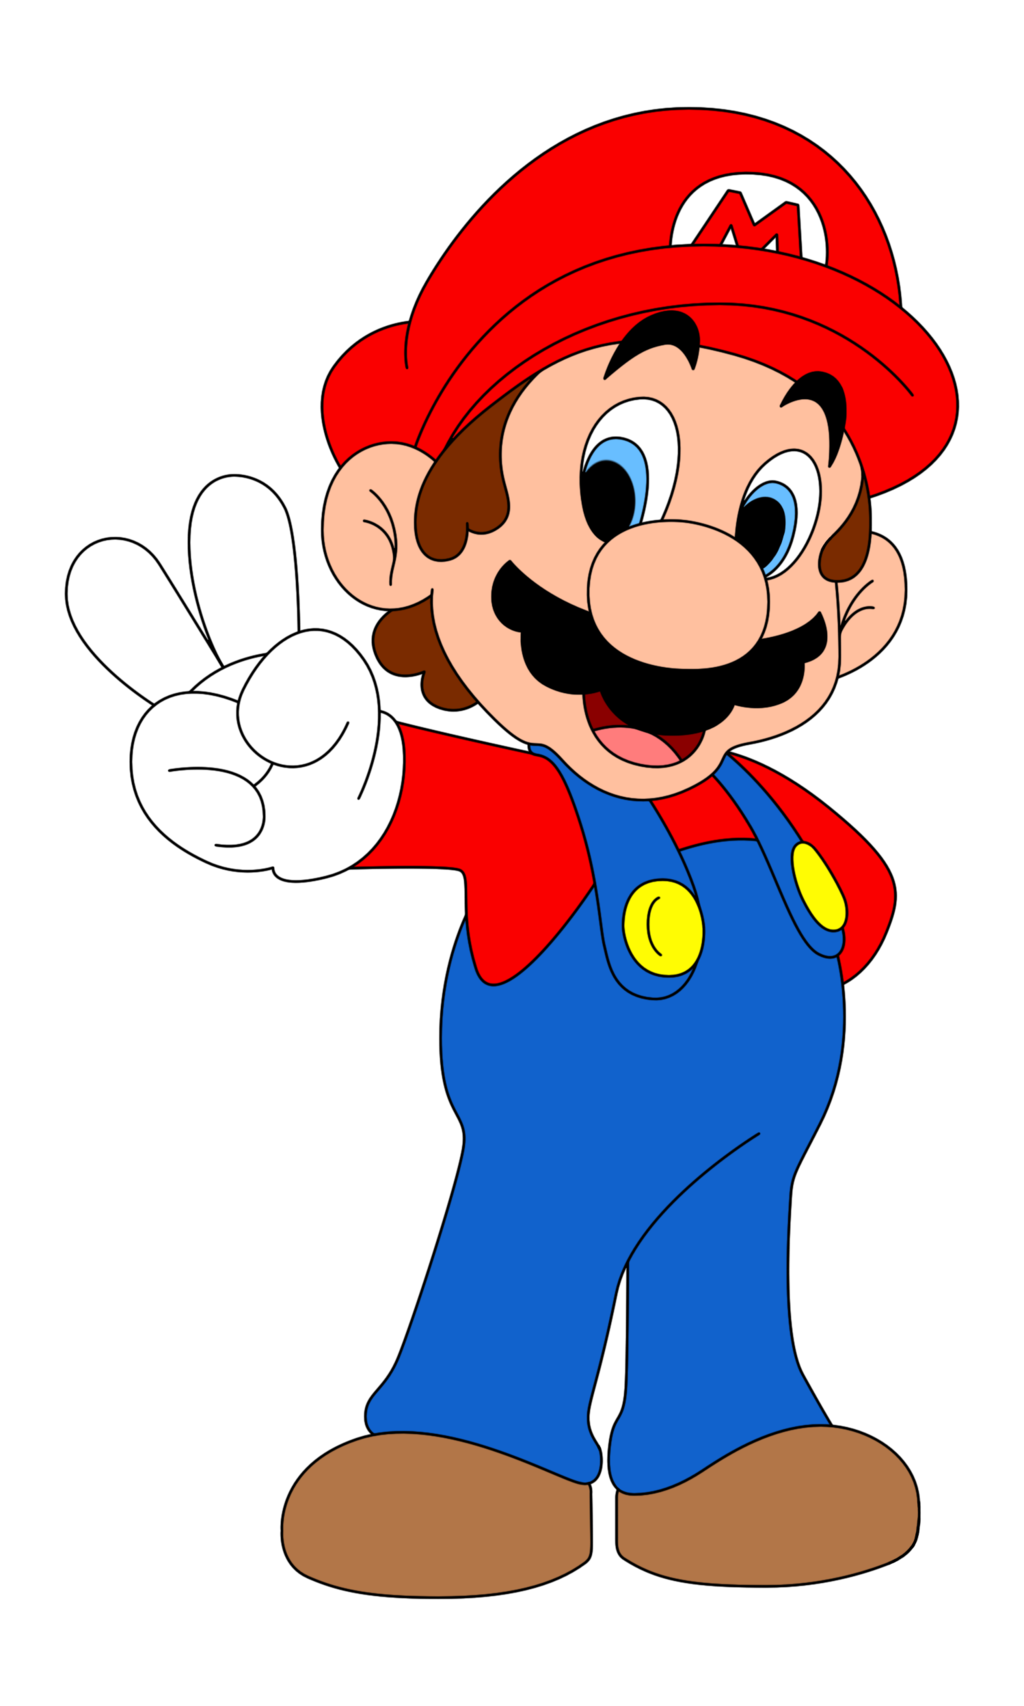 Mario clipart. Image result for super